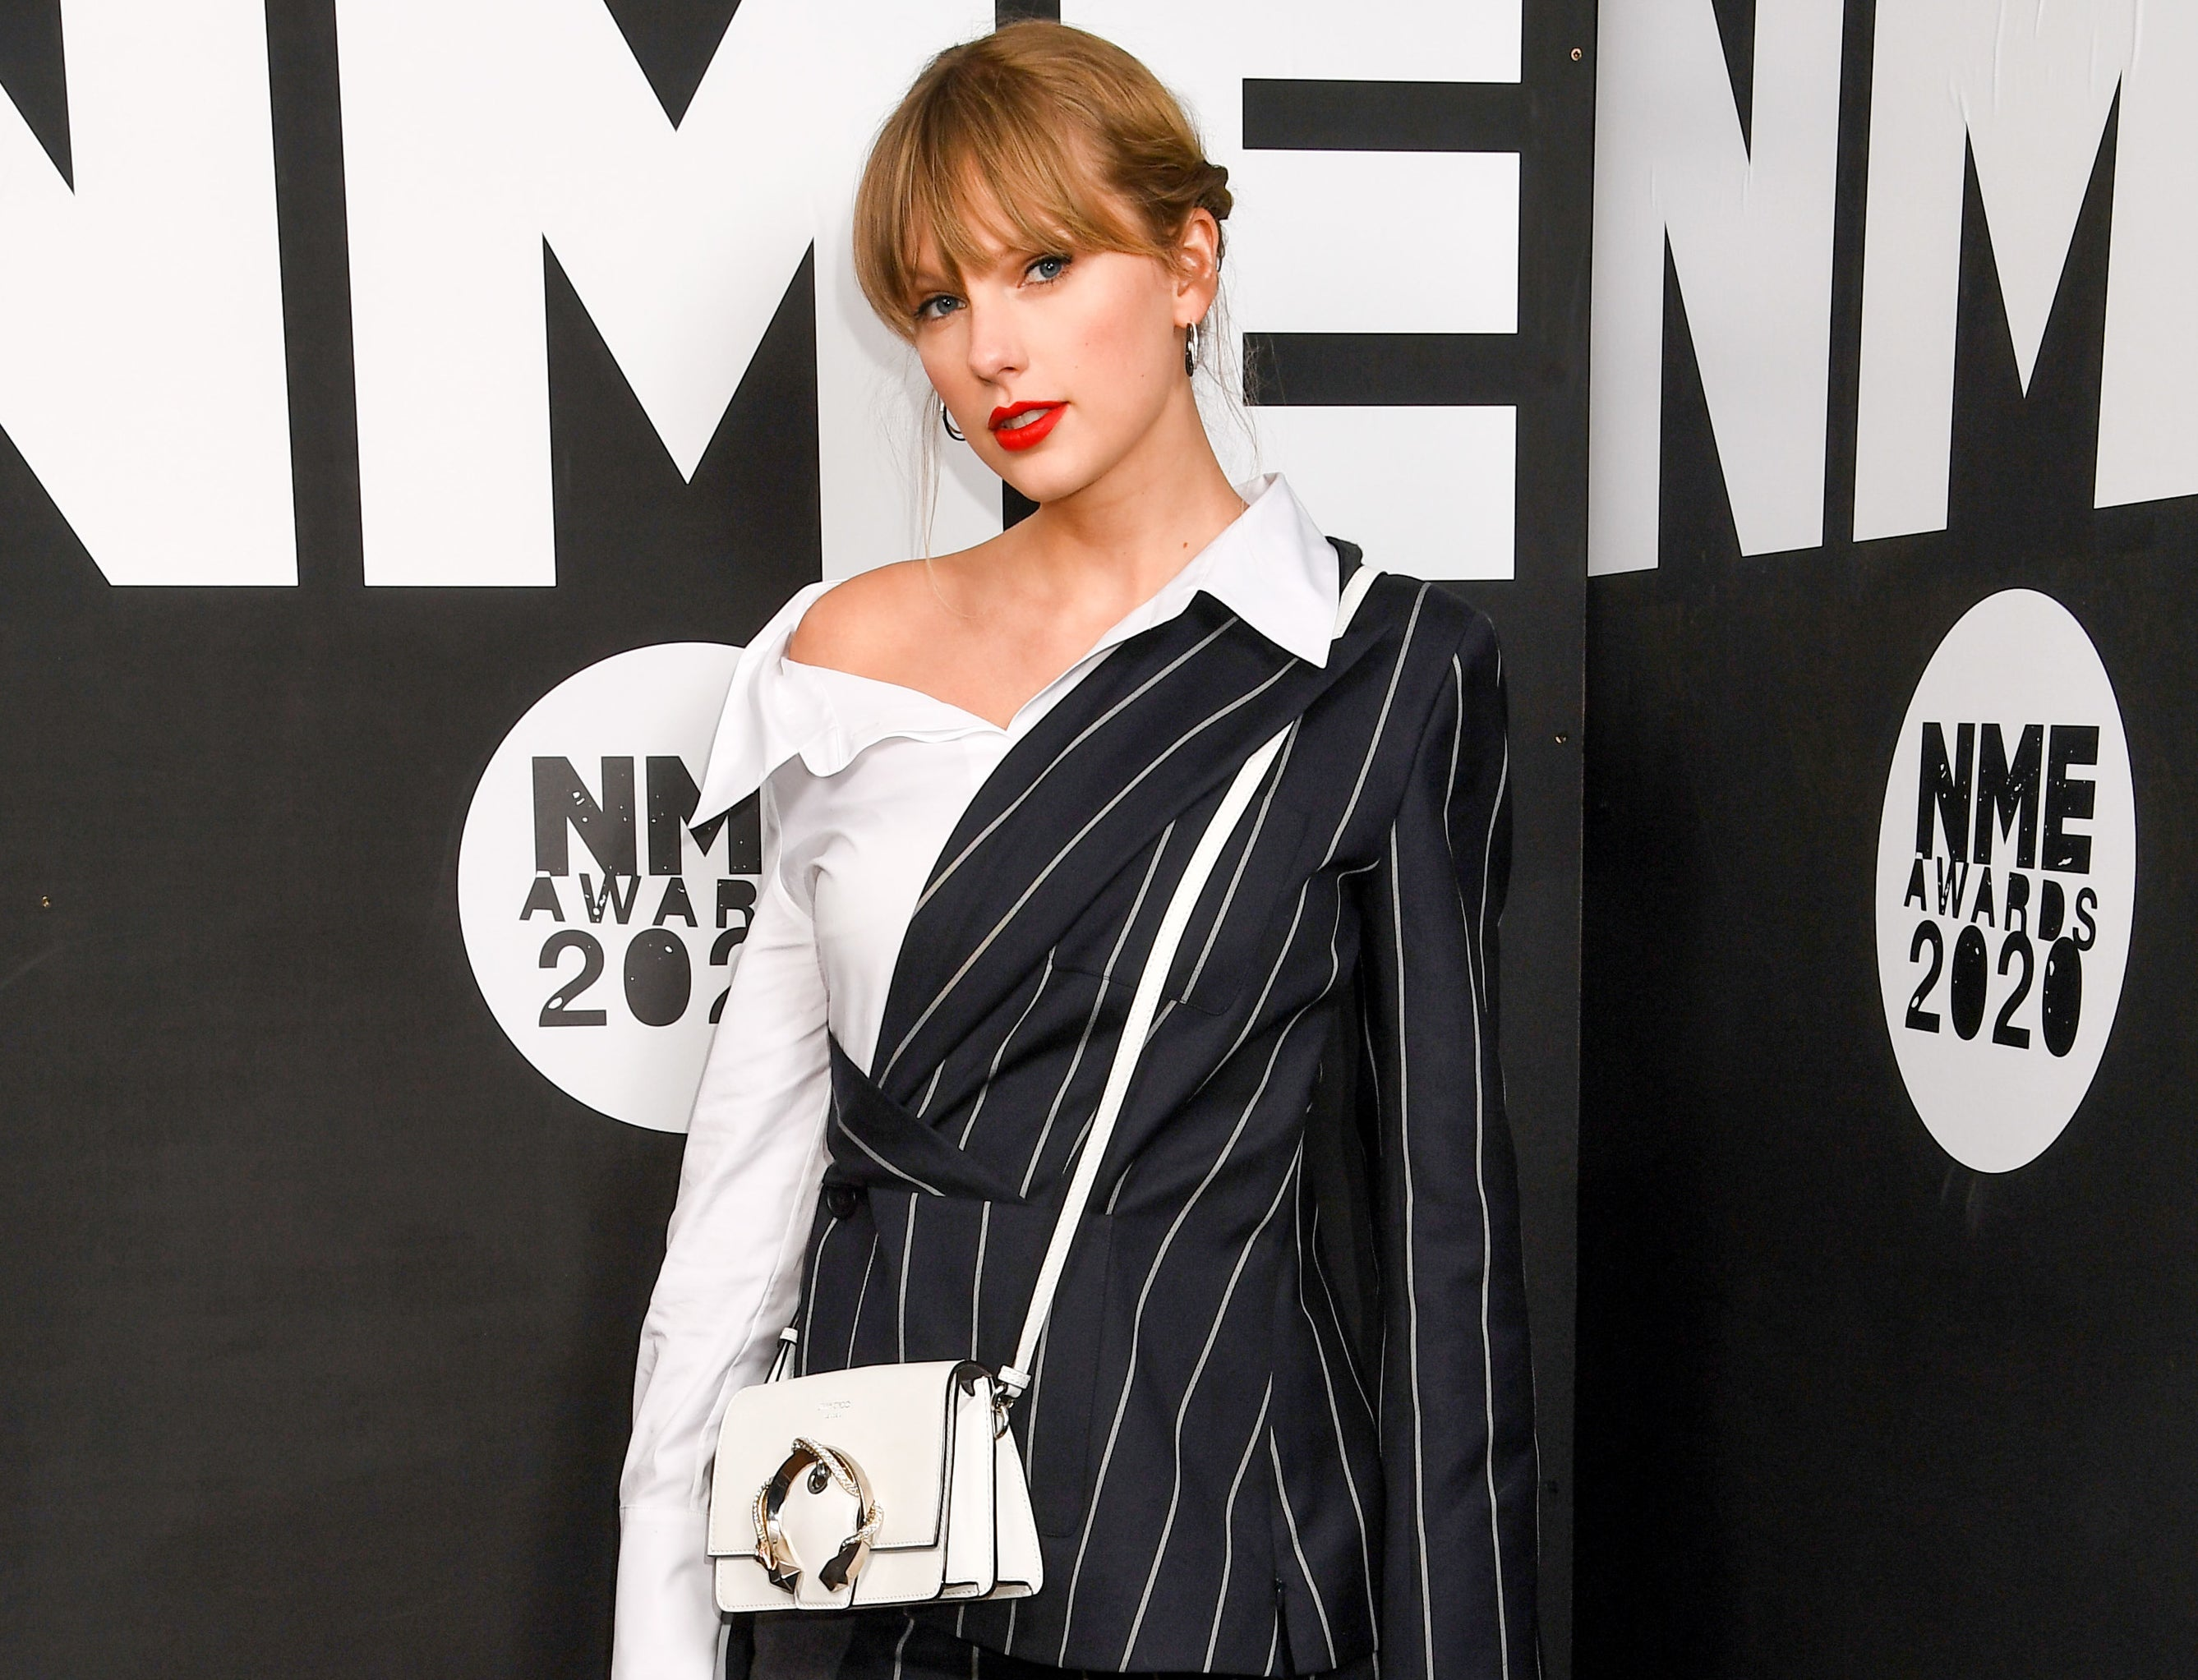 Taylor looks serious at an event